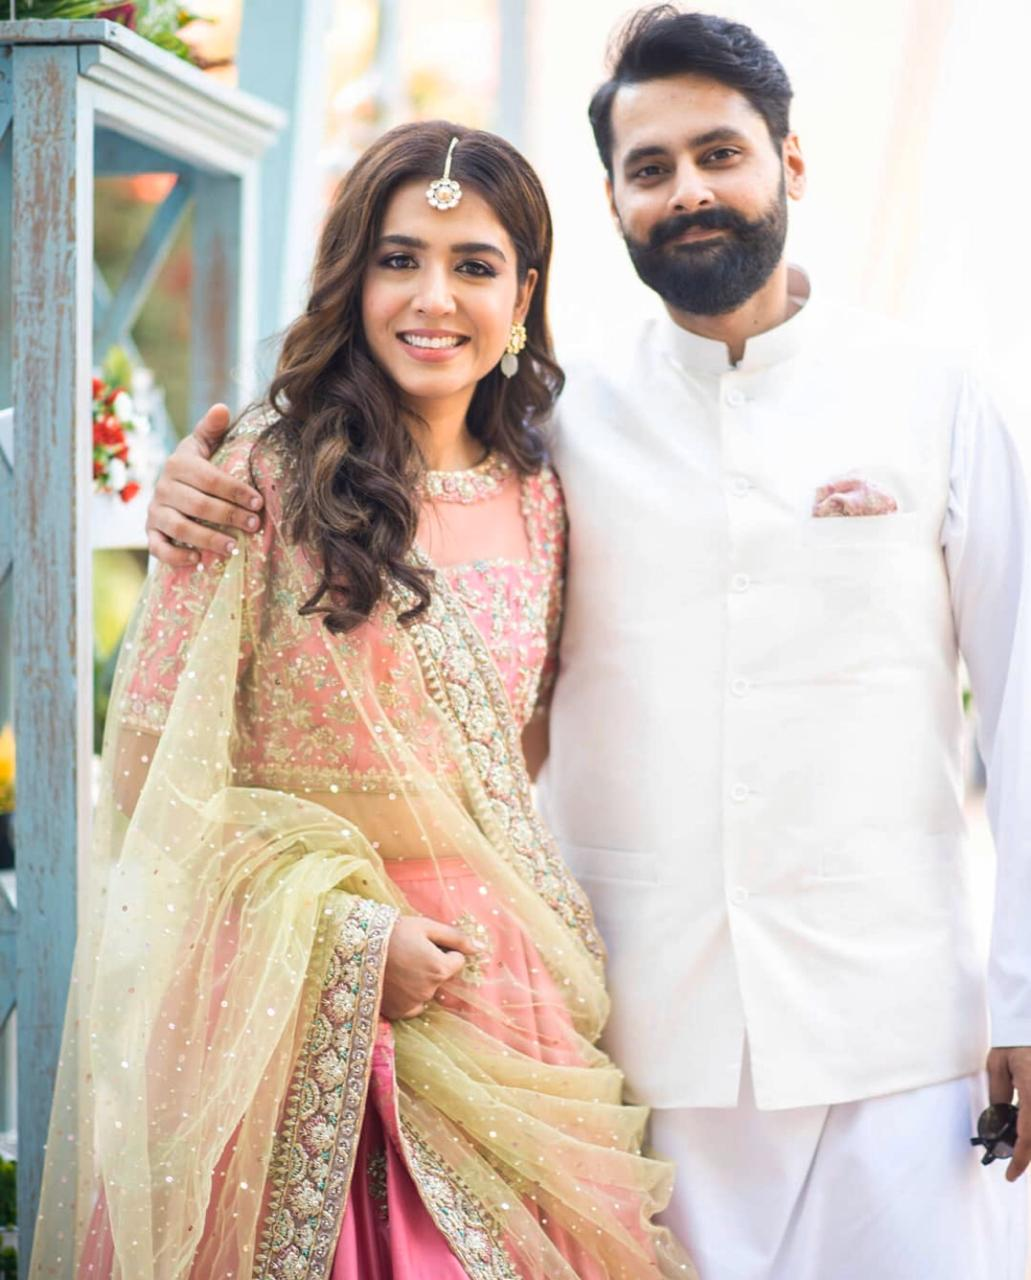 jibran nasir and mansha pasha get engaged in an intimate ceremony